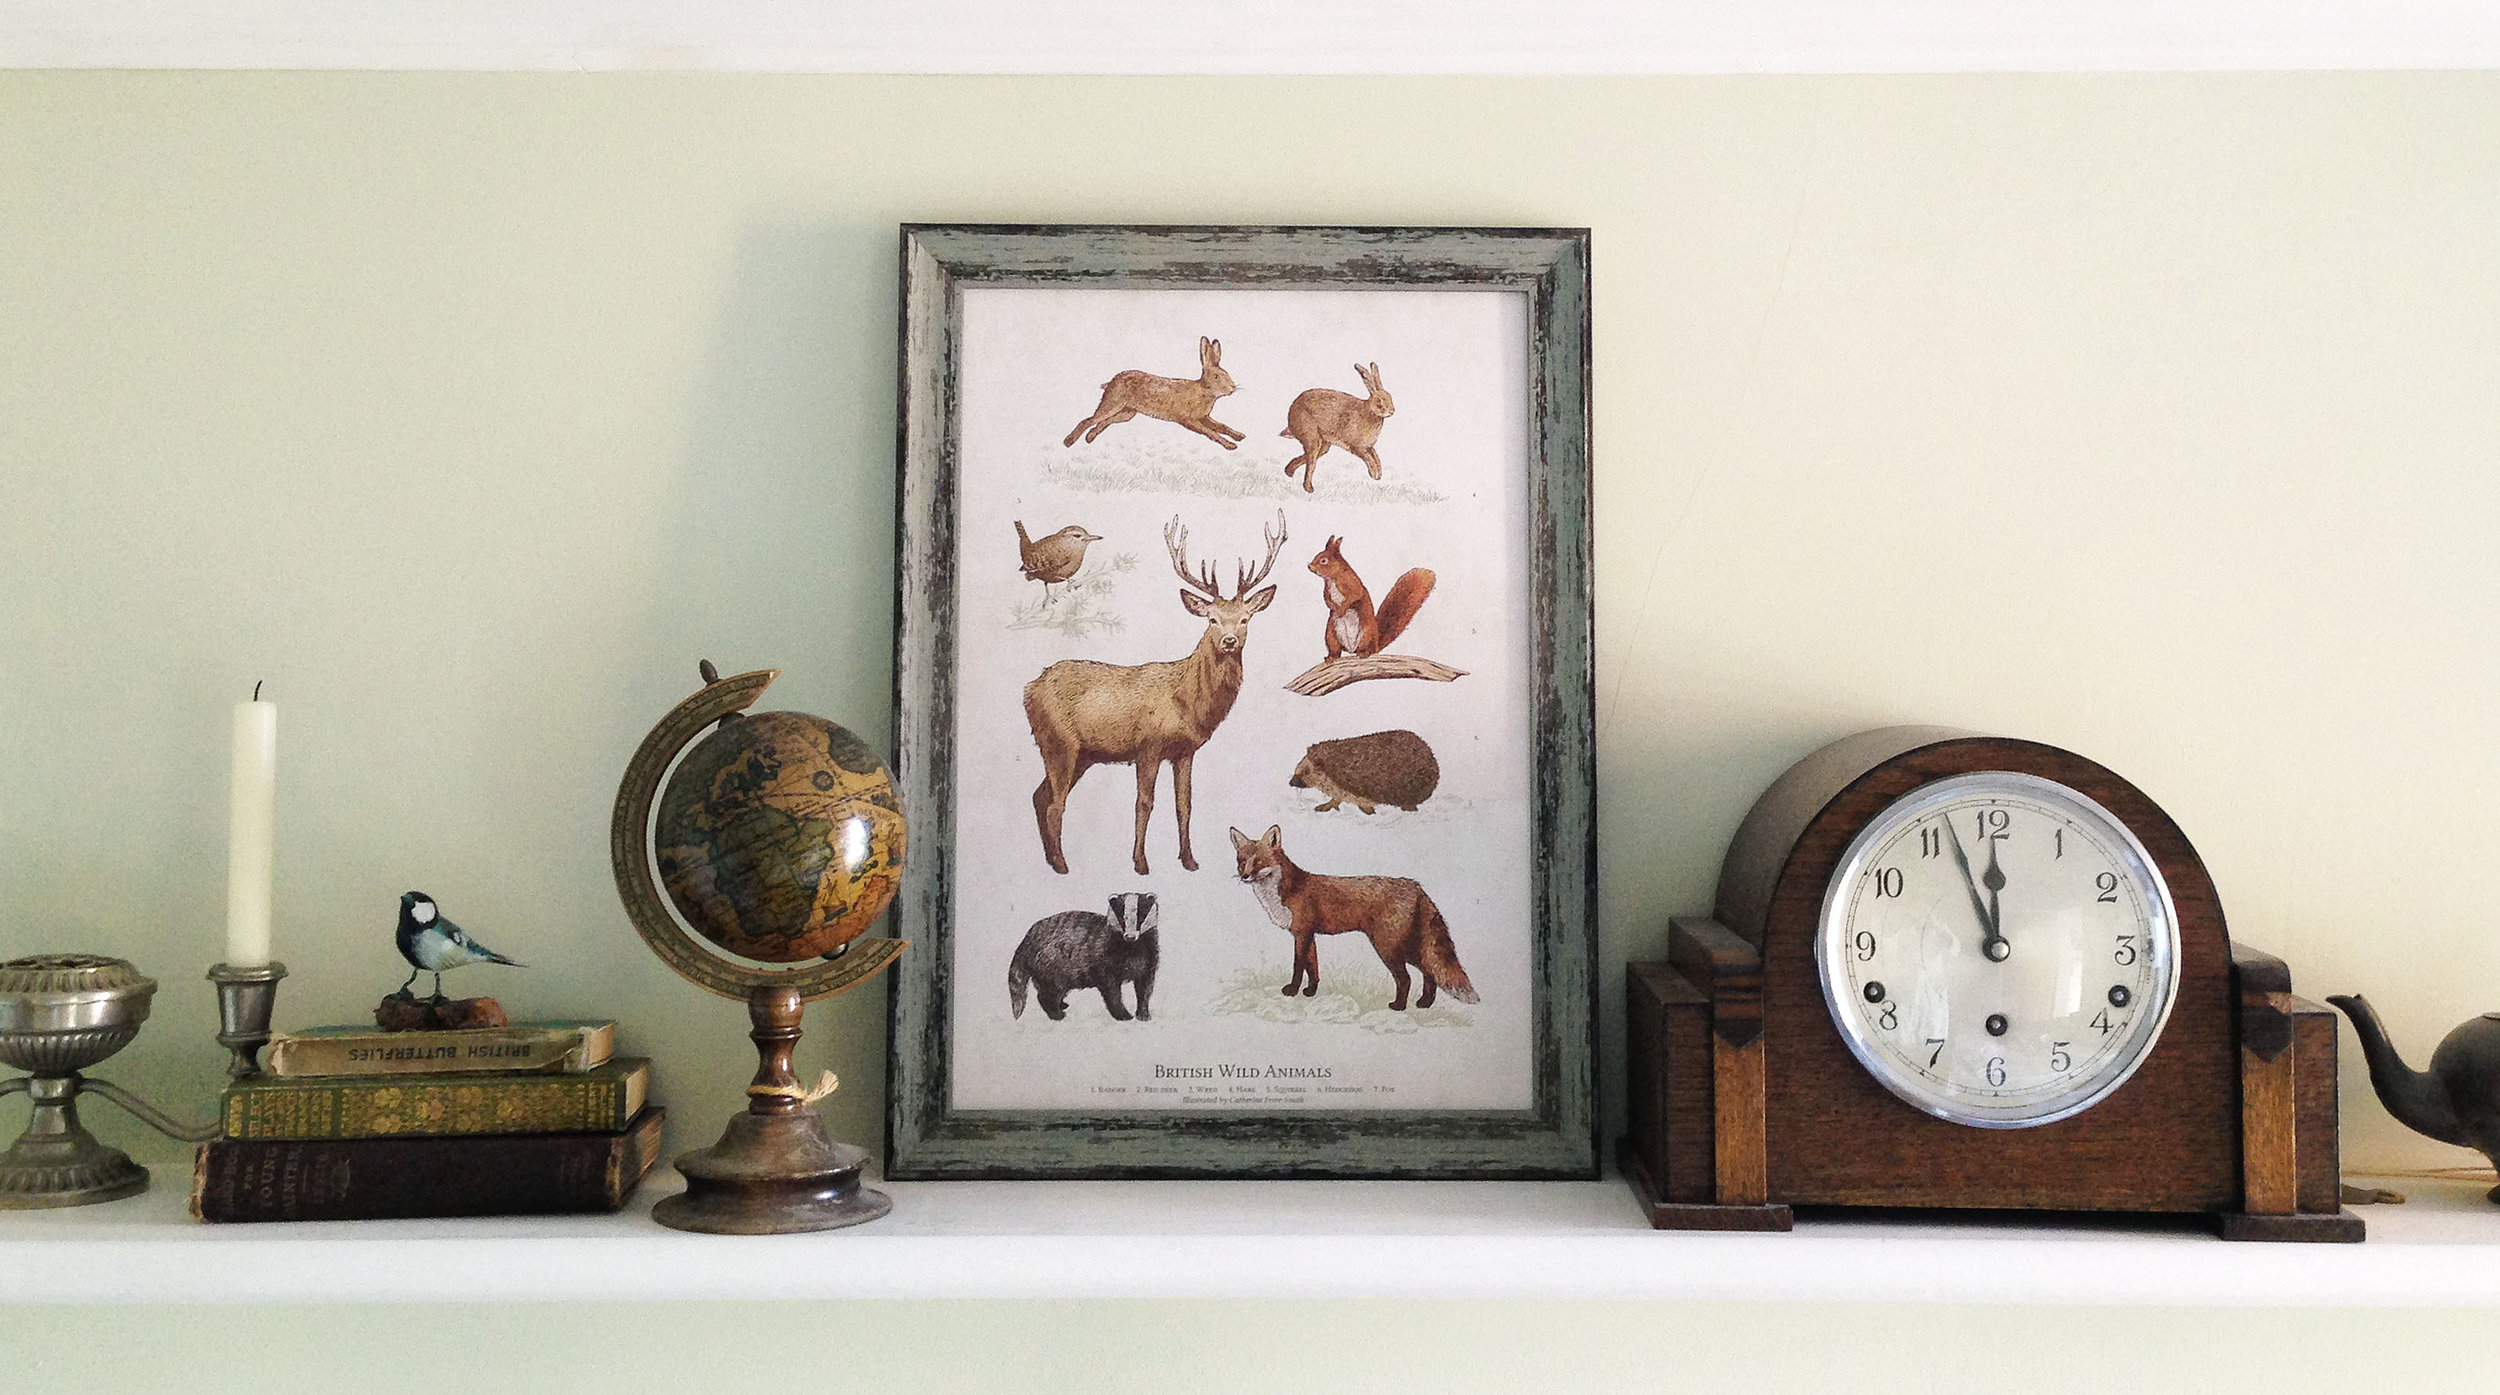 British Wild Animals A3 Art Print